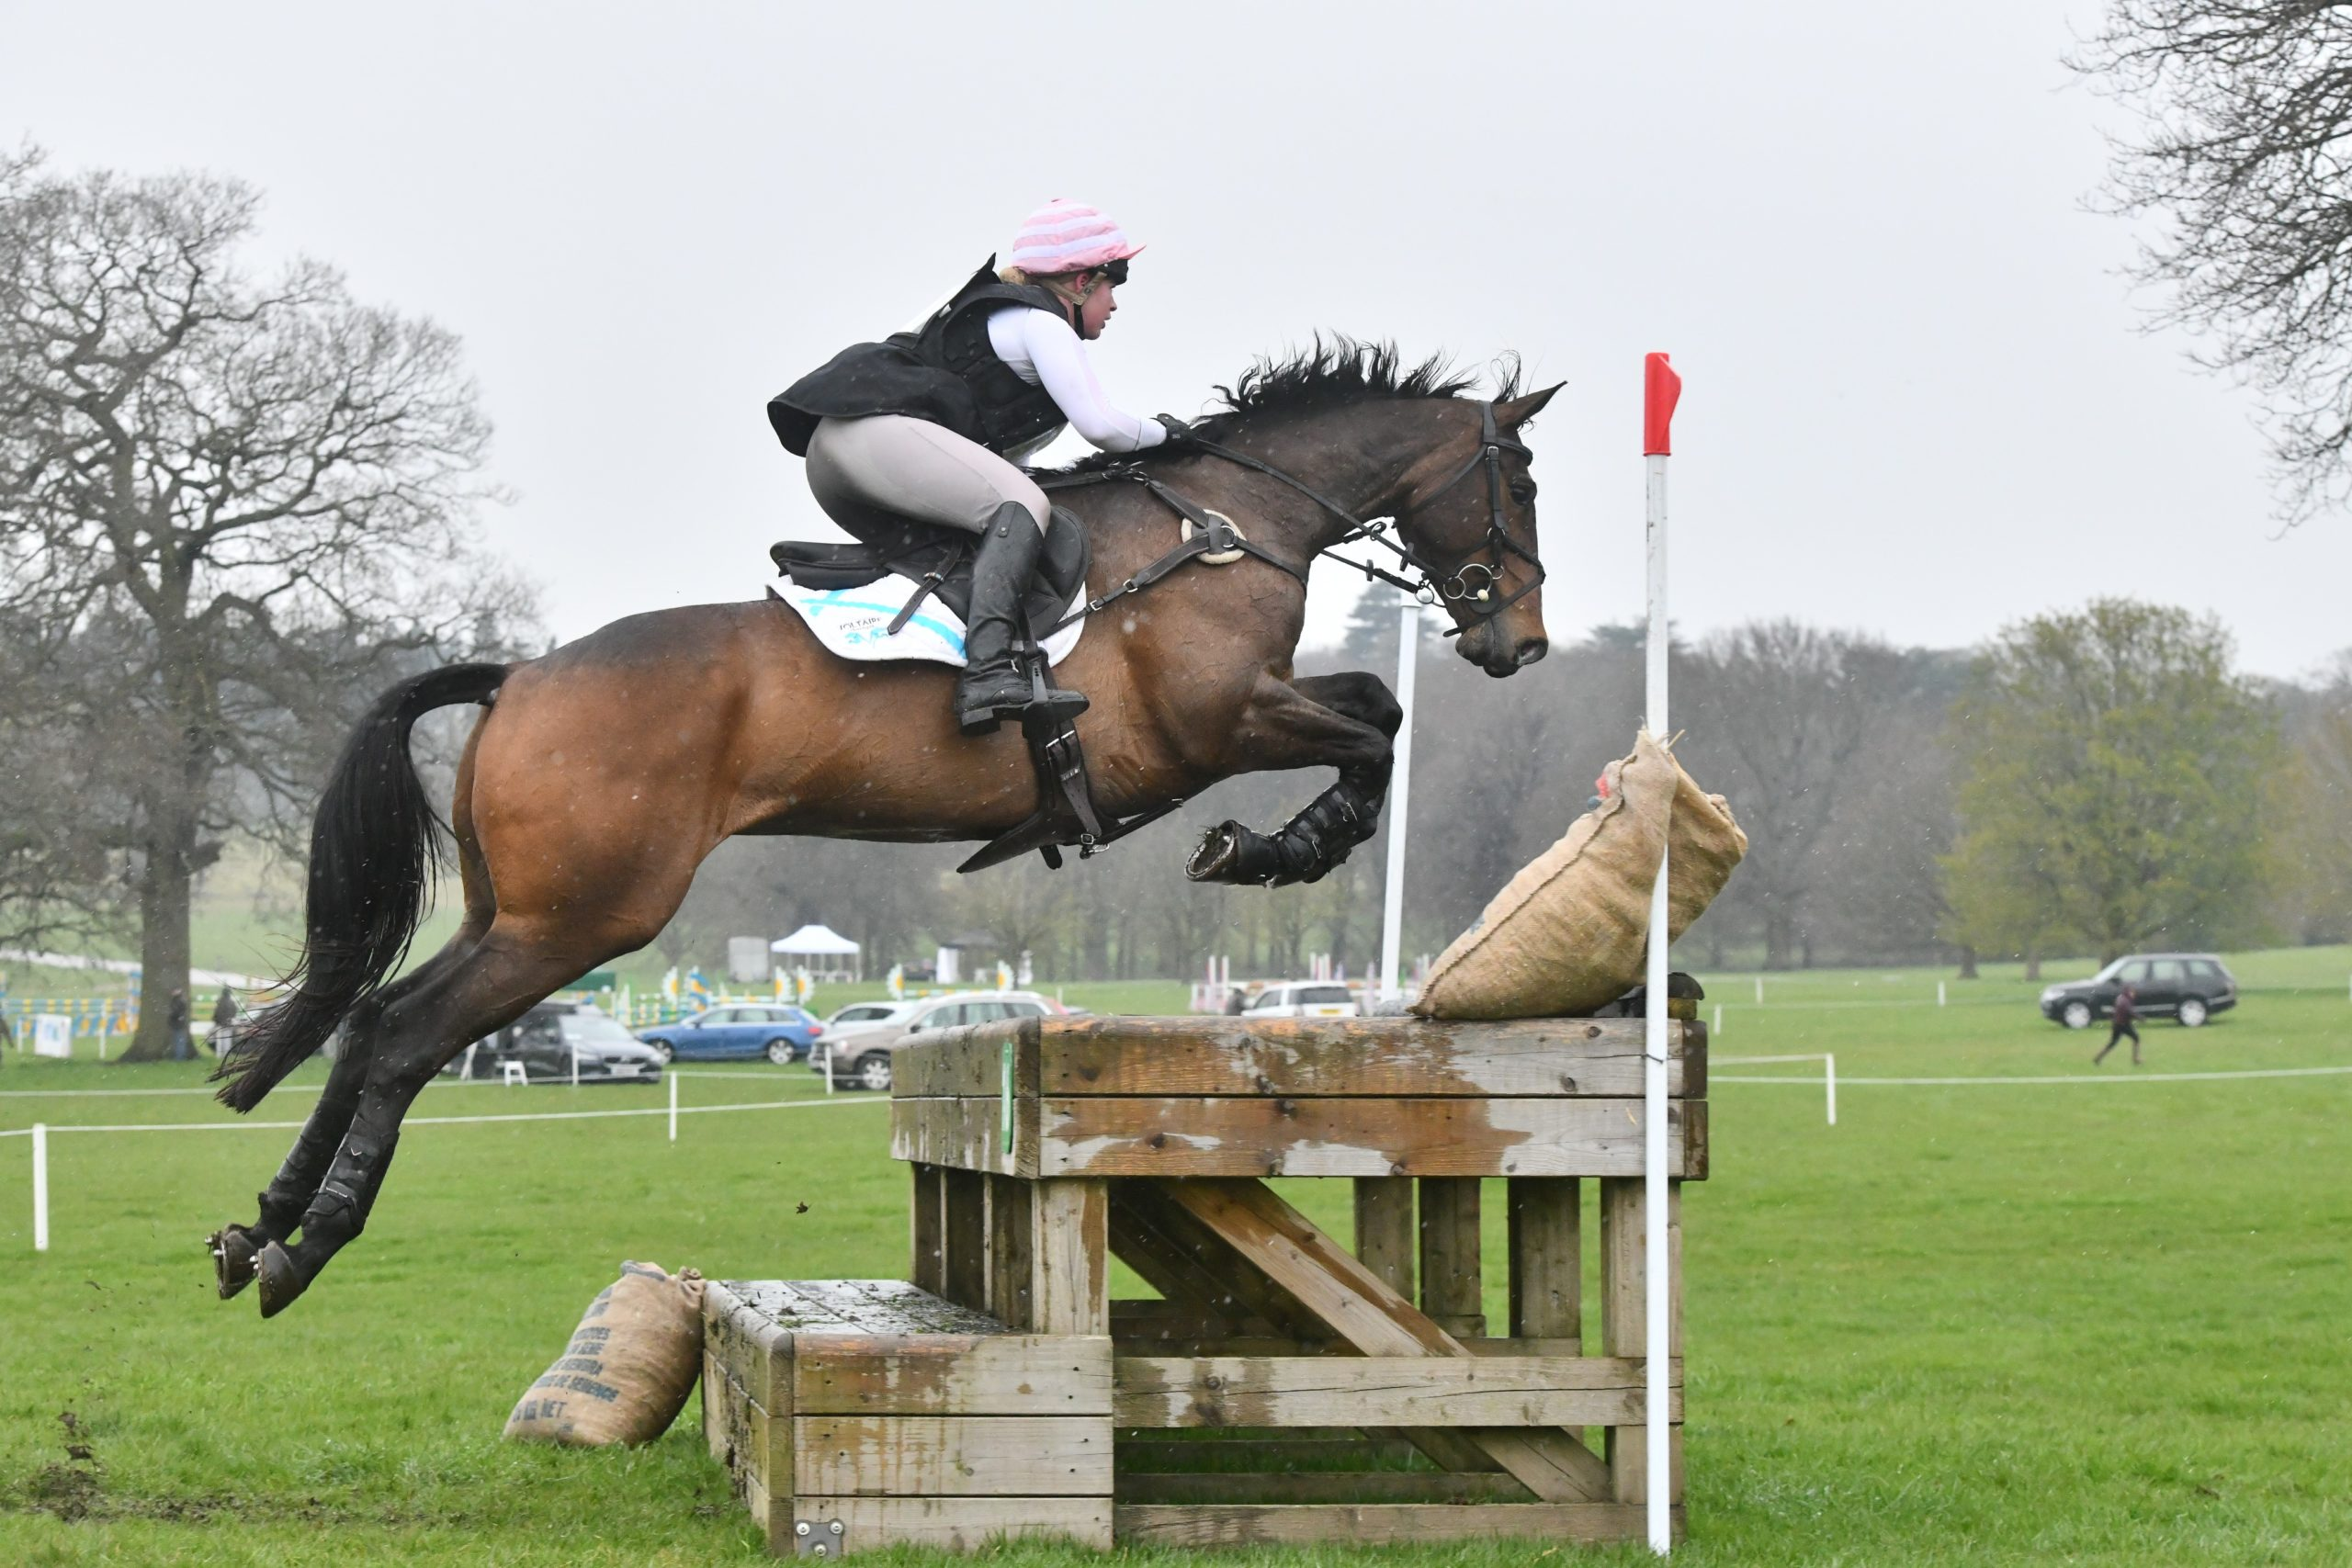 Florence continues to see equestrian success